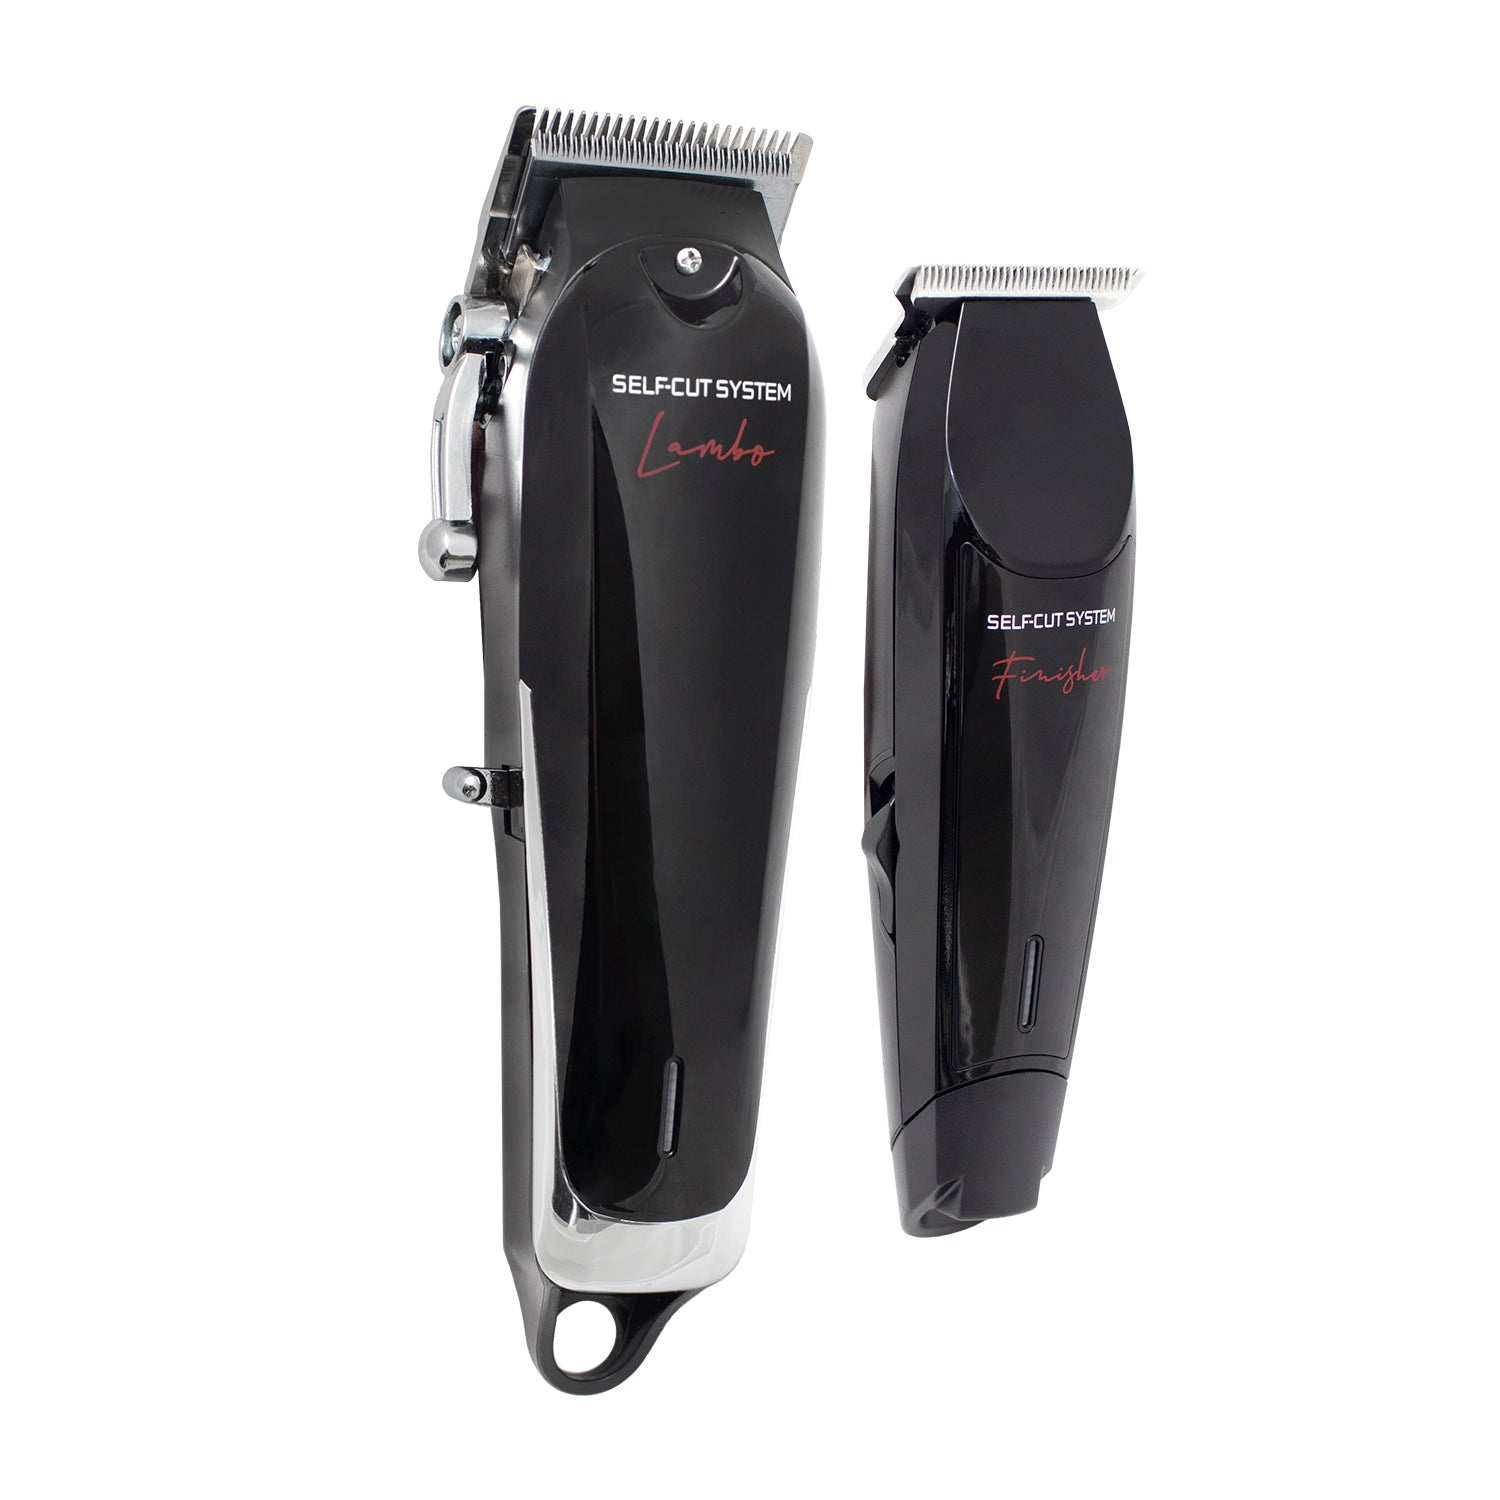 SCS Cordless Clipper & Trimmer Retro Kit